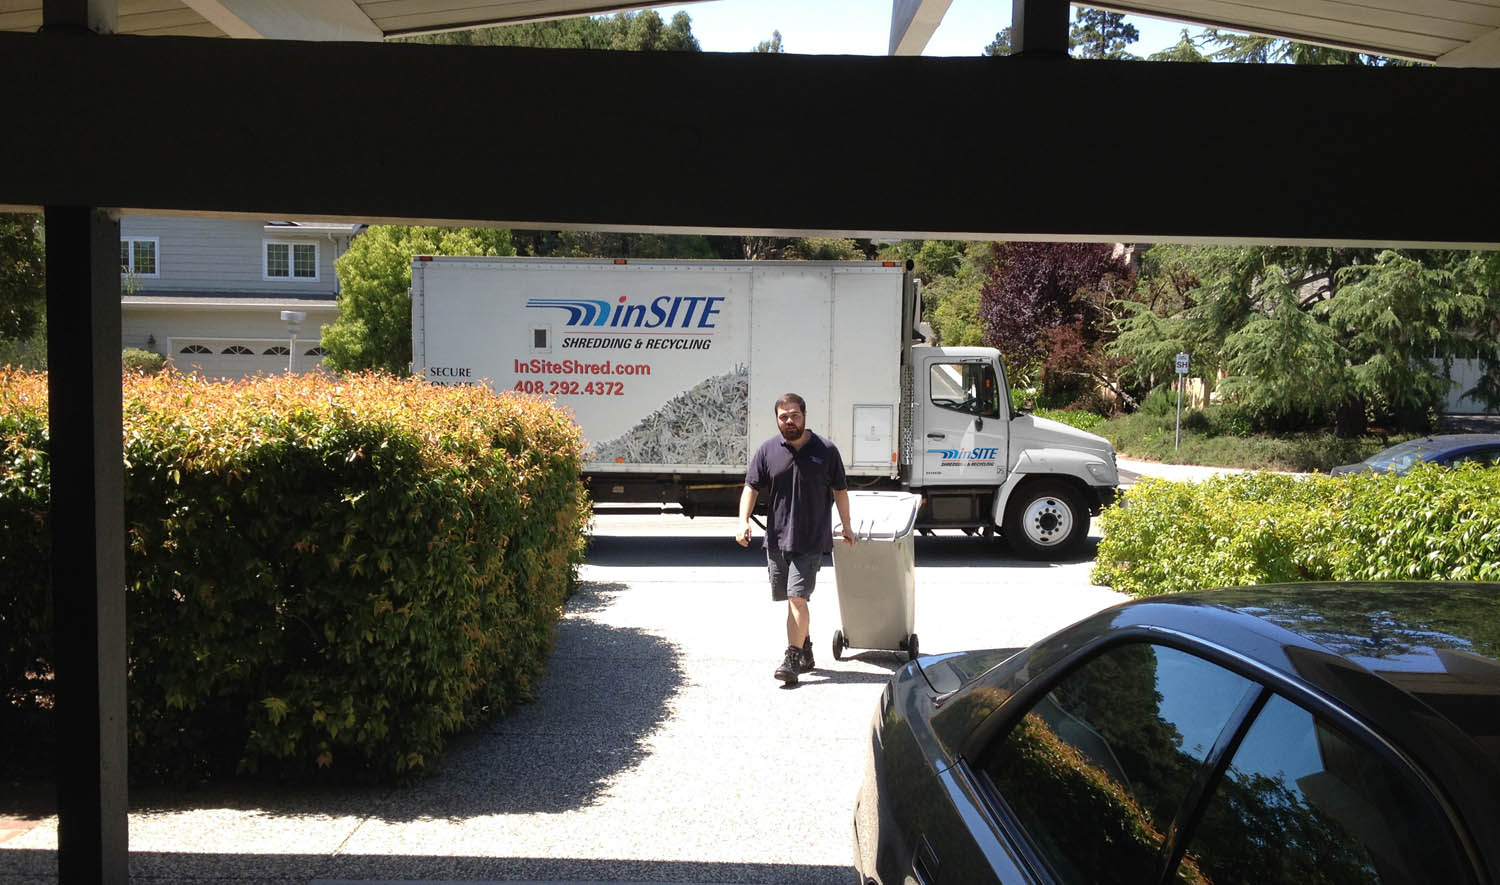 Insite shredding residential on site shredding service